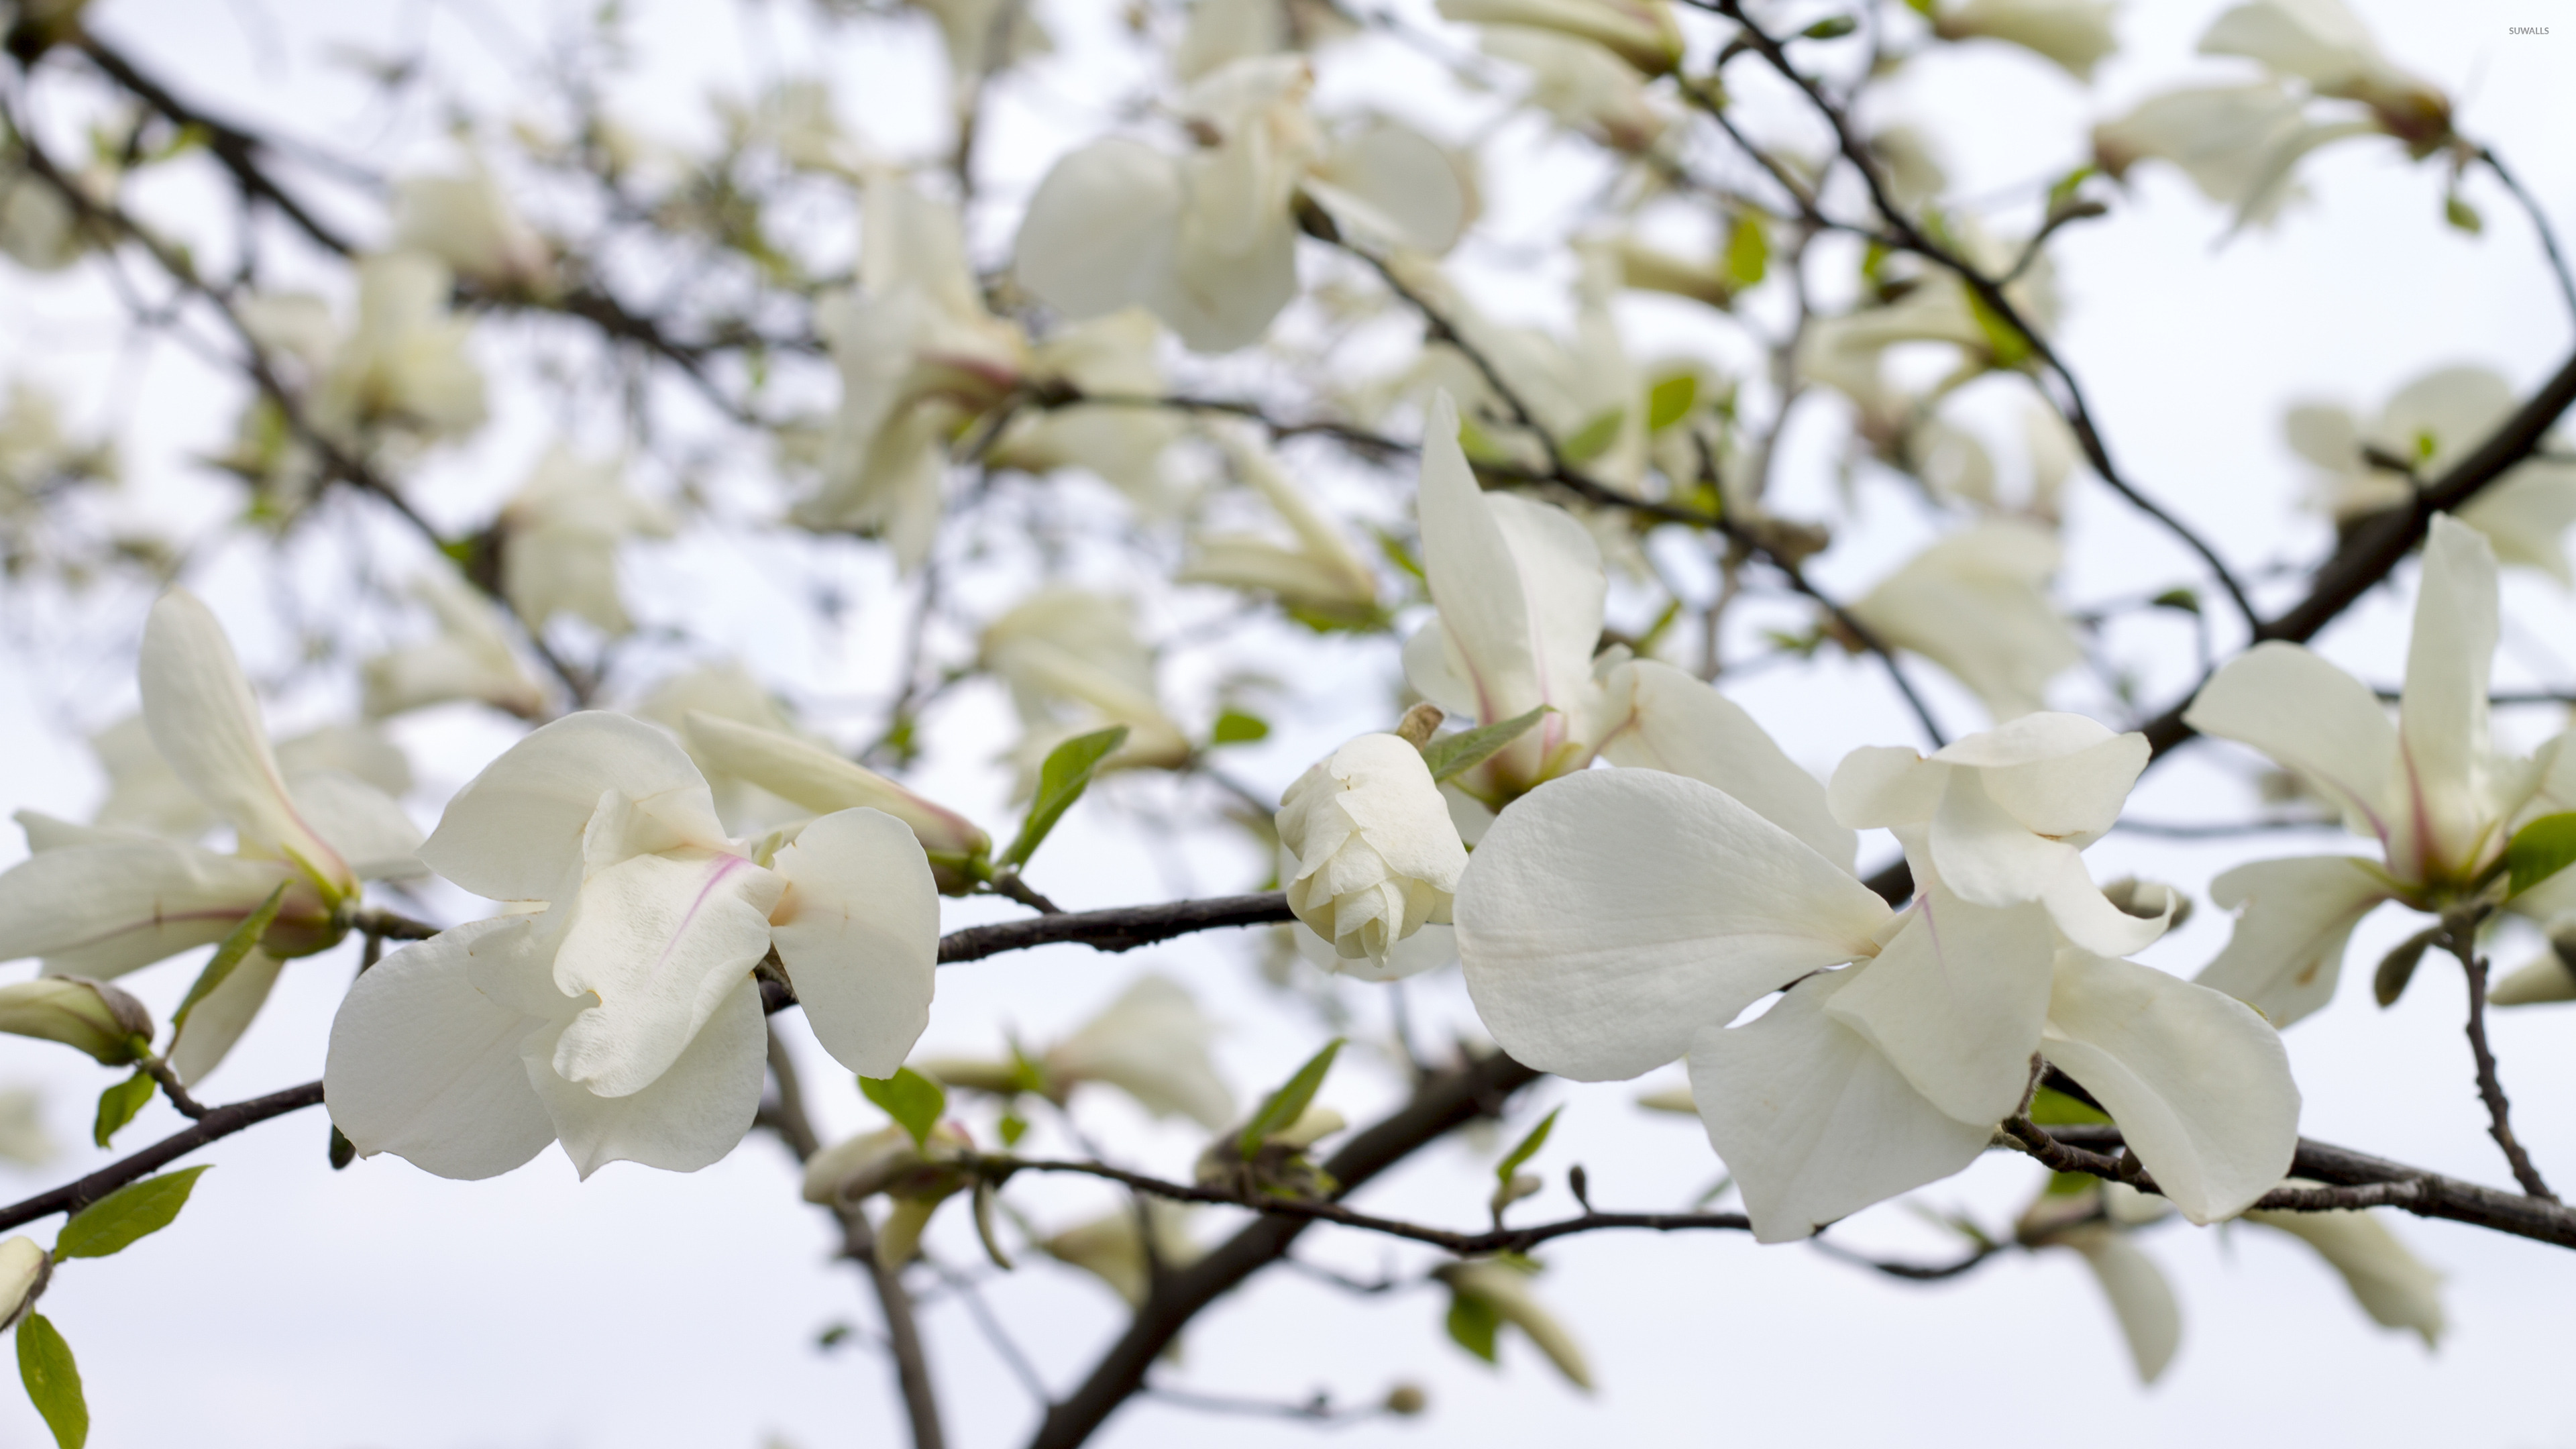 White Magnolia Blossoms Wallpaper Flower Wallpapers 42085